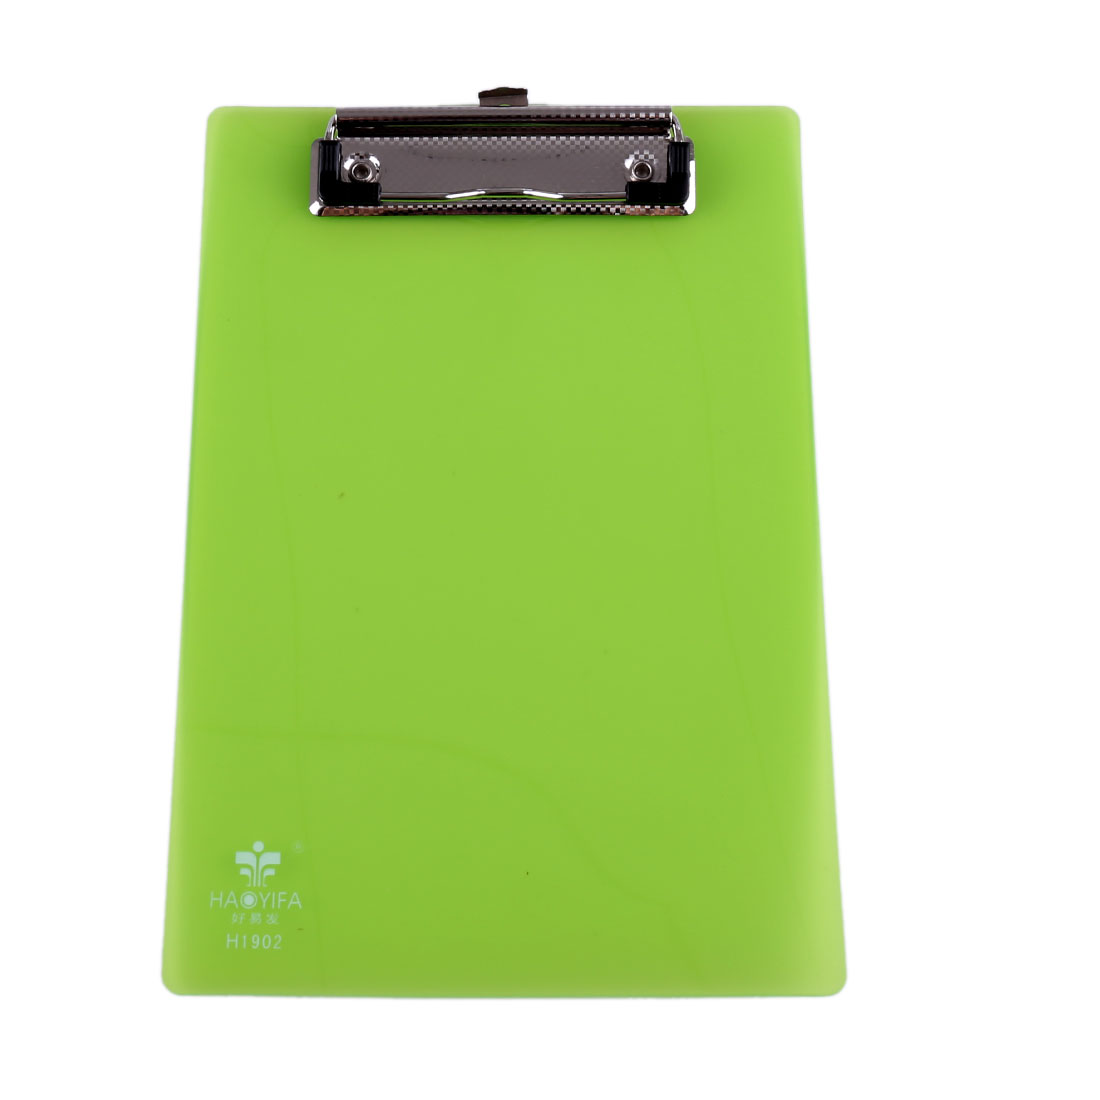 Office A5 Record List Note Paper Clipboard Clip Board Green